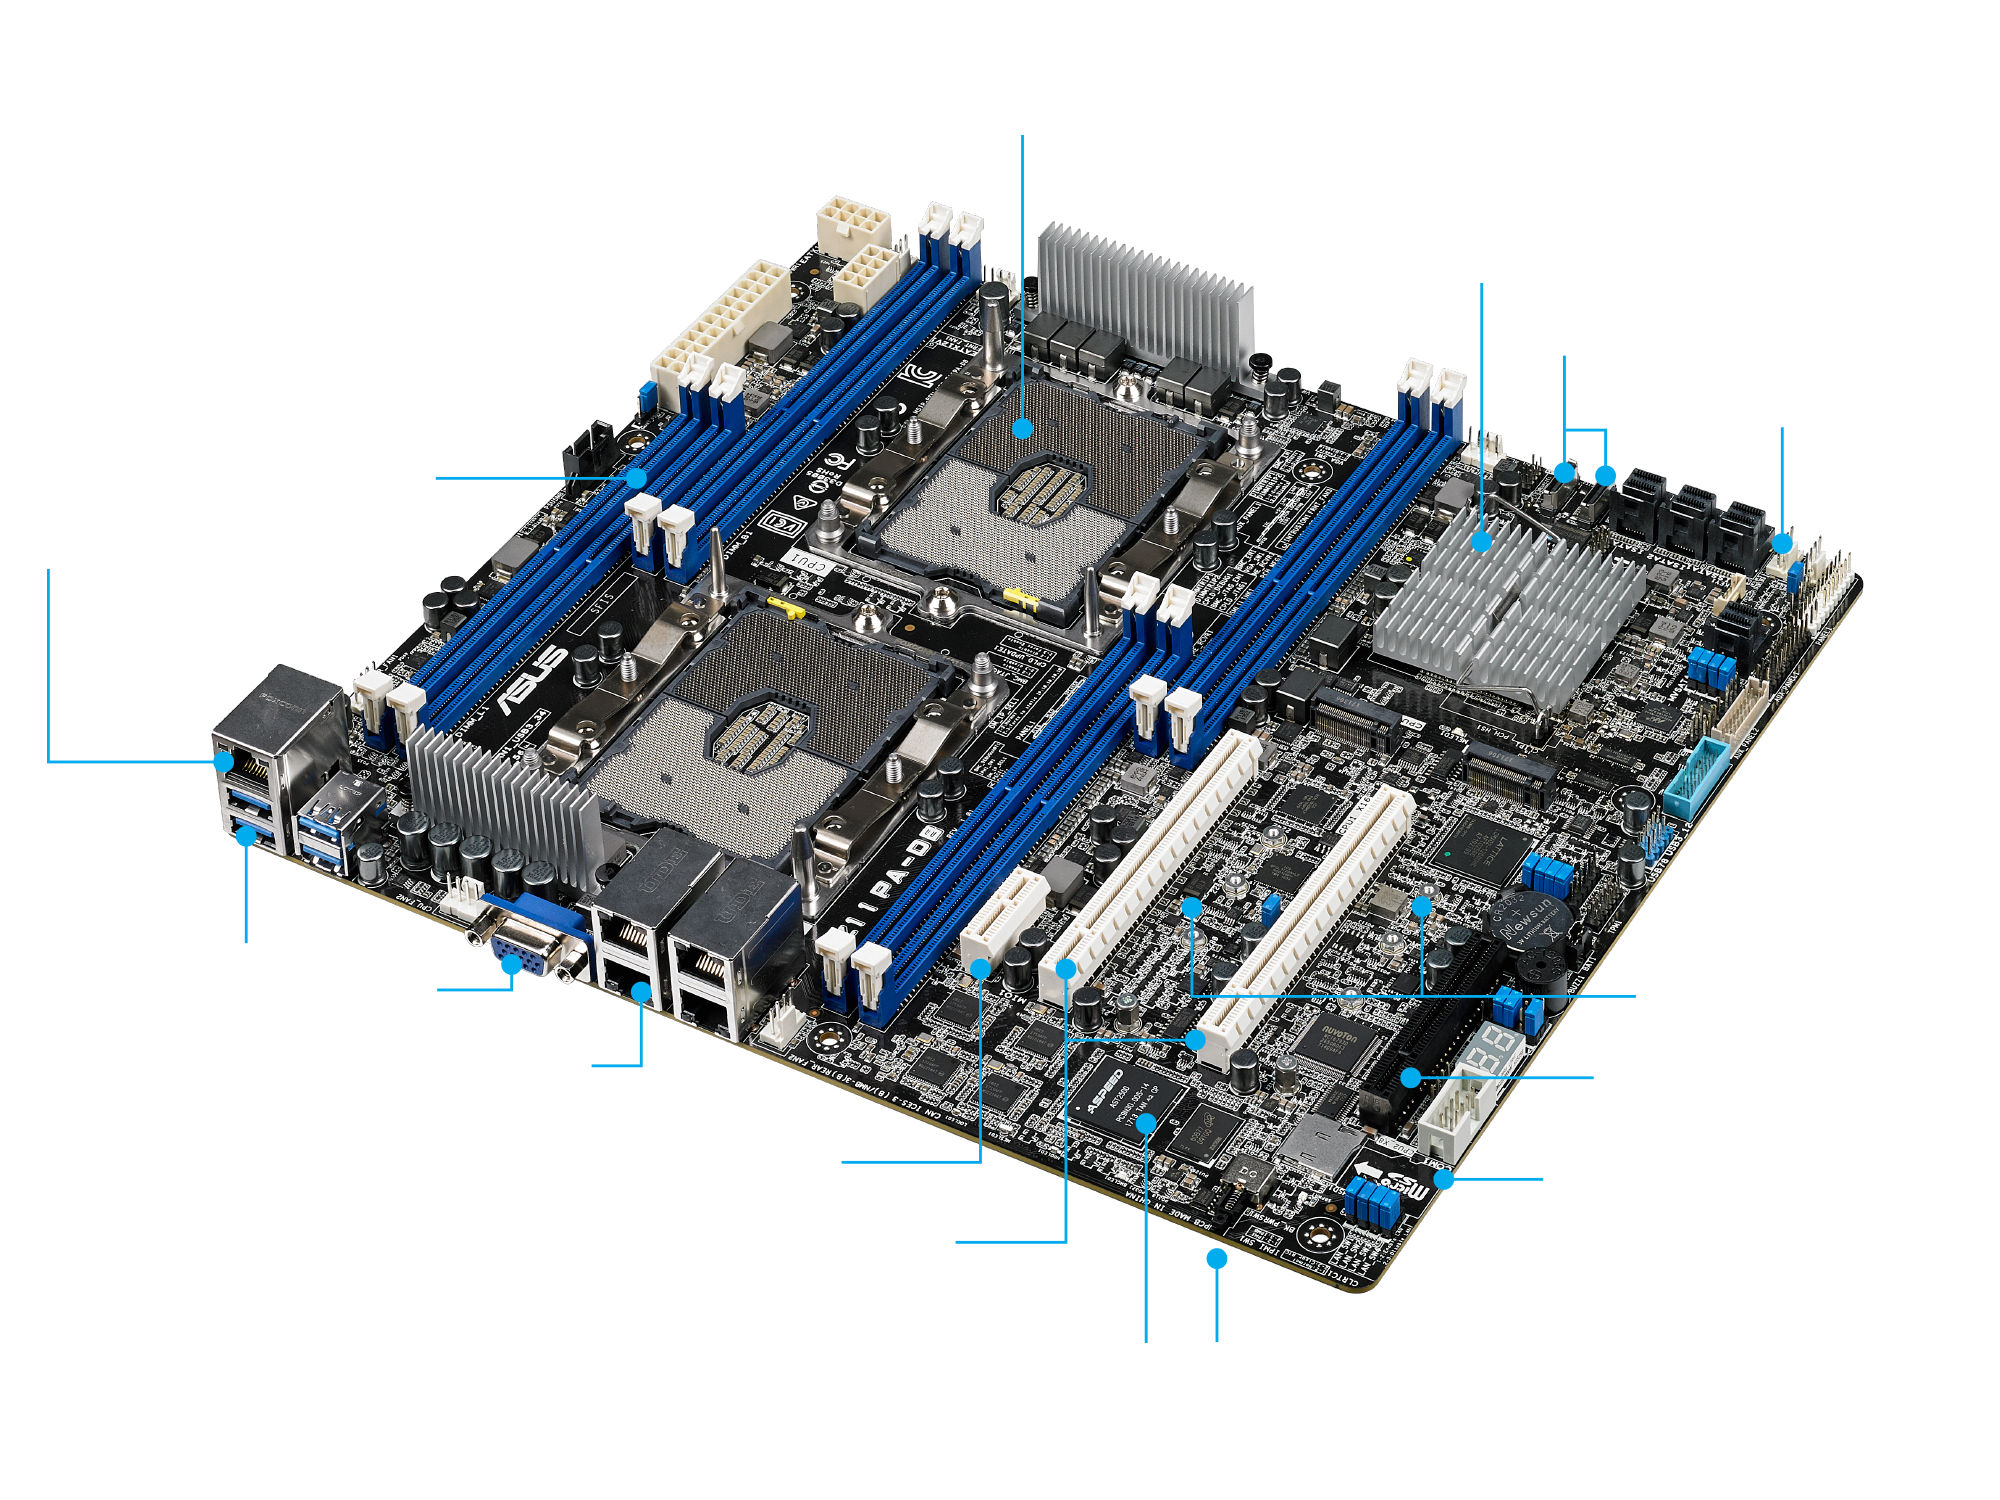 Bo mạch chủ Mainboard Asus Z11PA-D8 (Dual CPU Server & Workstation)